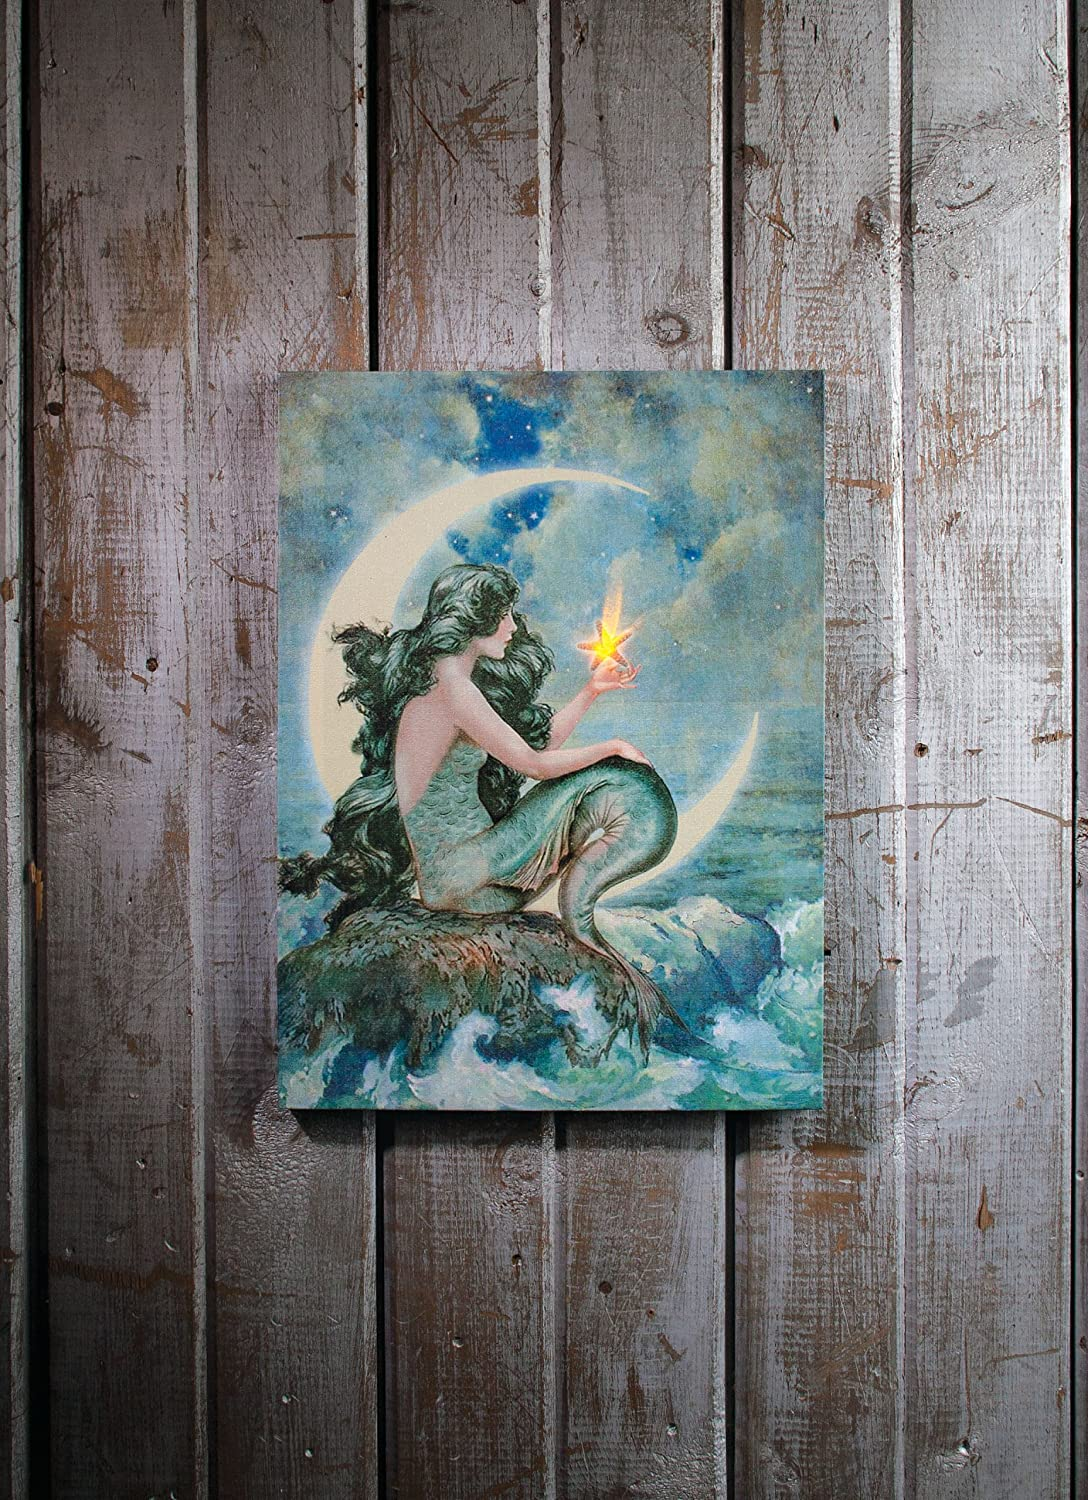 Amazon.com: Ohio Wholesale Radiance Lighted Moon Mermaid Canvas Wall Art,  From Our Water Collection: Wall Decor: Paintings